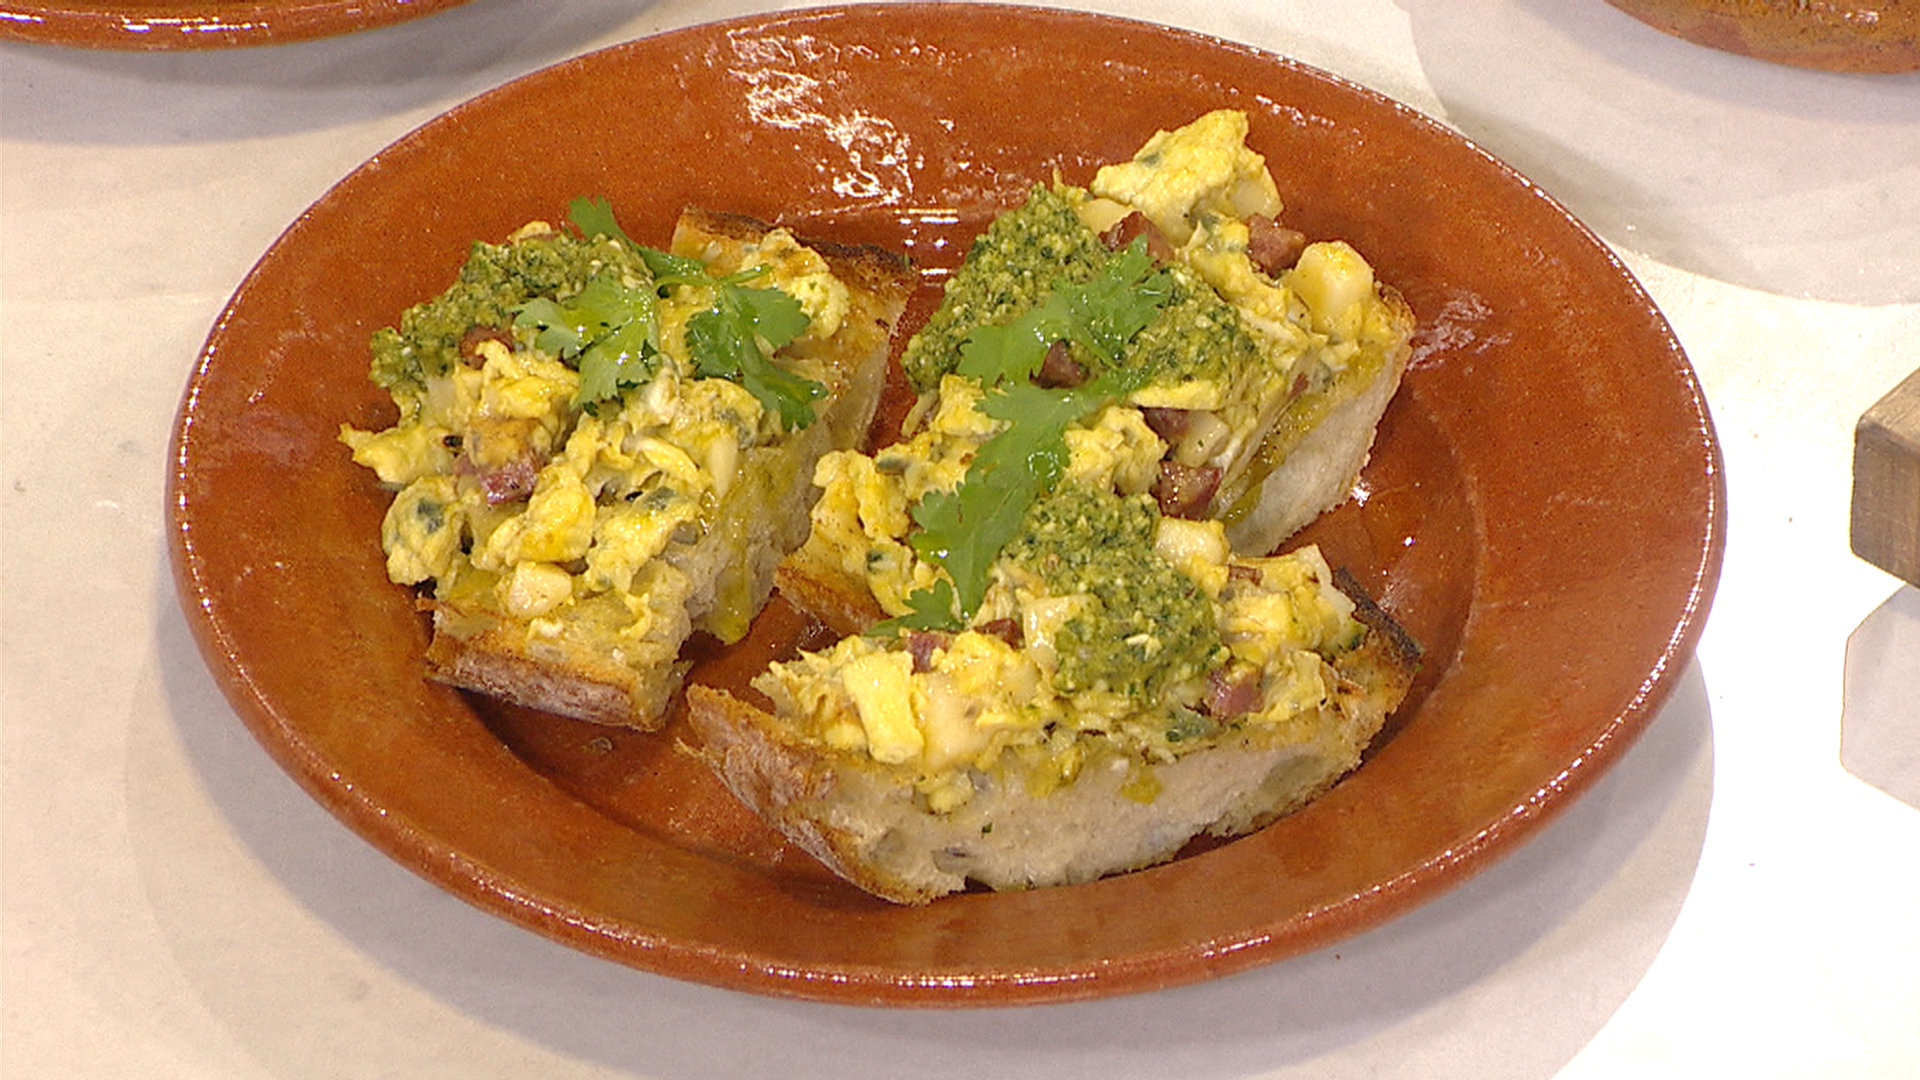 Bobby flay whips up best ever brunch recipes for Brunch with bobby recipes